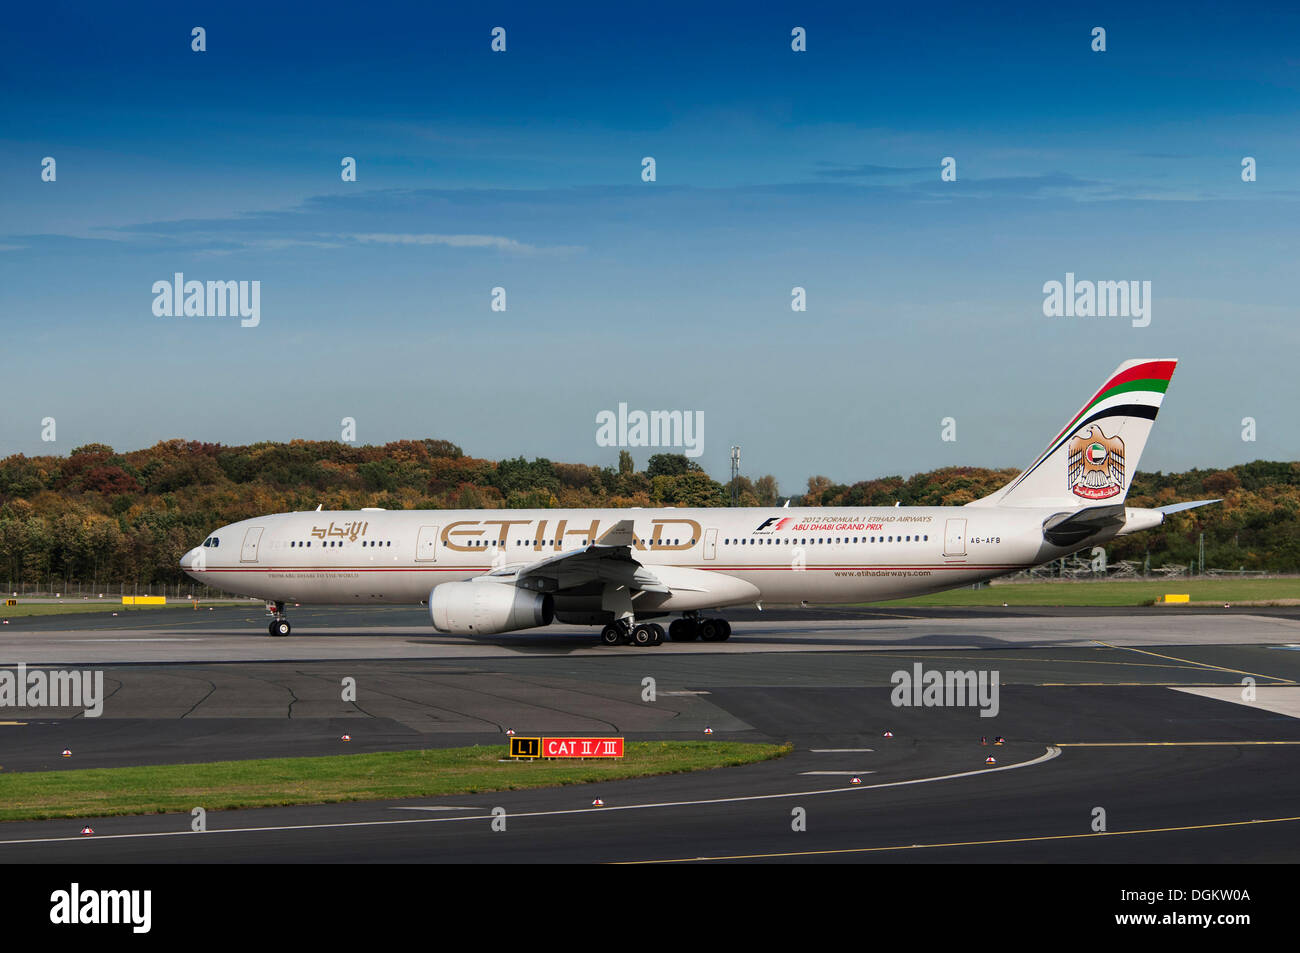 Etihad Airways, Airbus A330-343X, on the runway, Duesseldorf International Airport, North Rhine-Westphalia - Stock Image